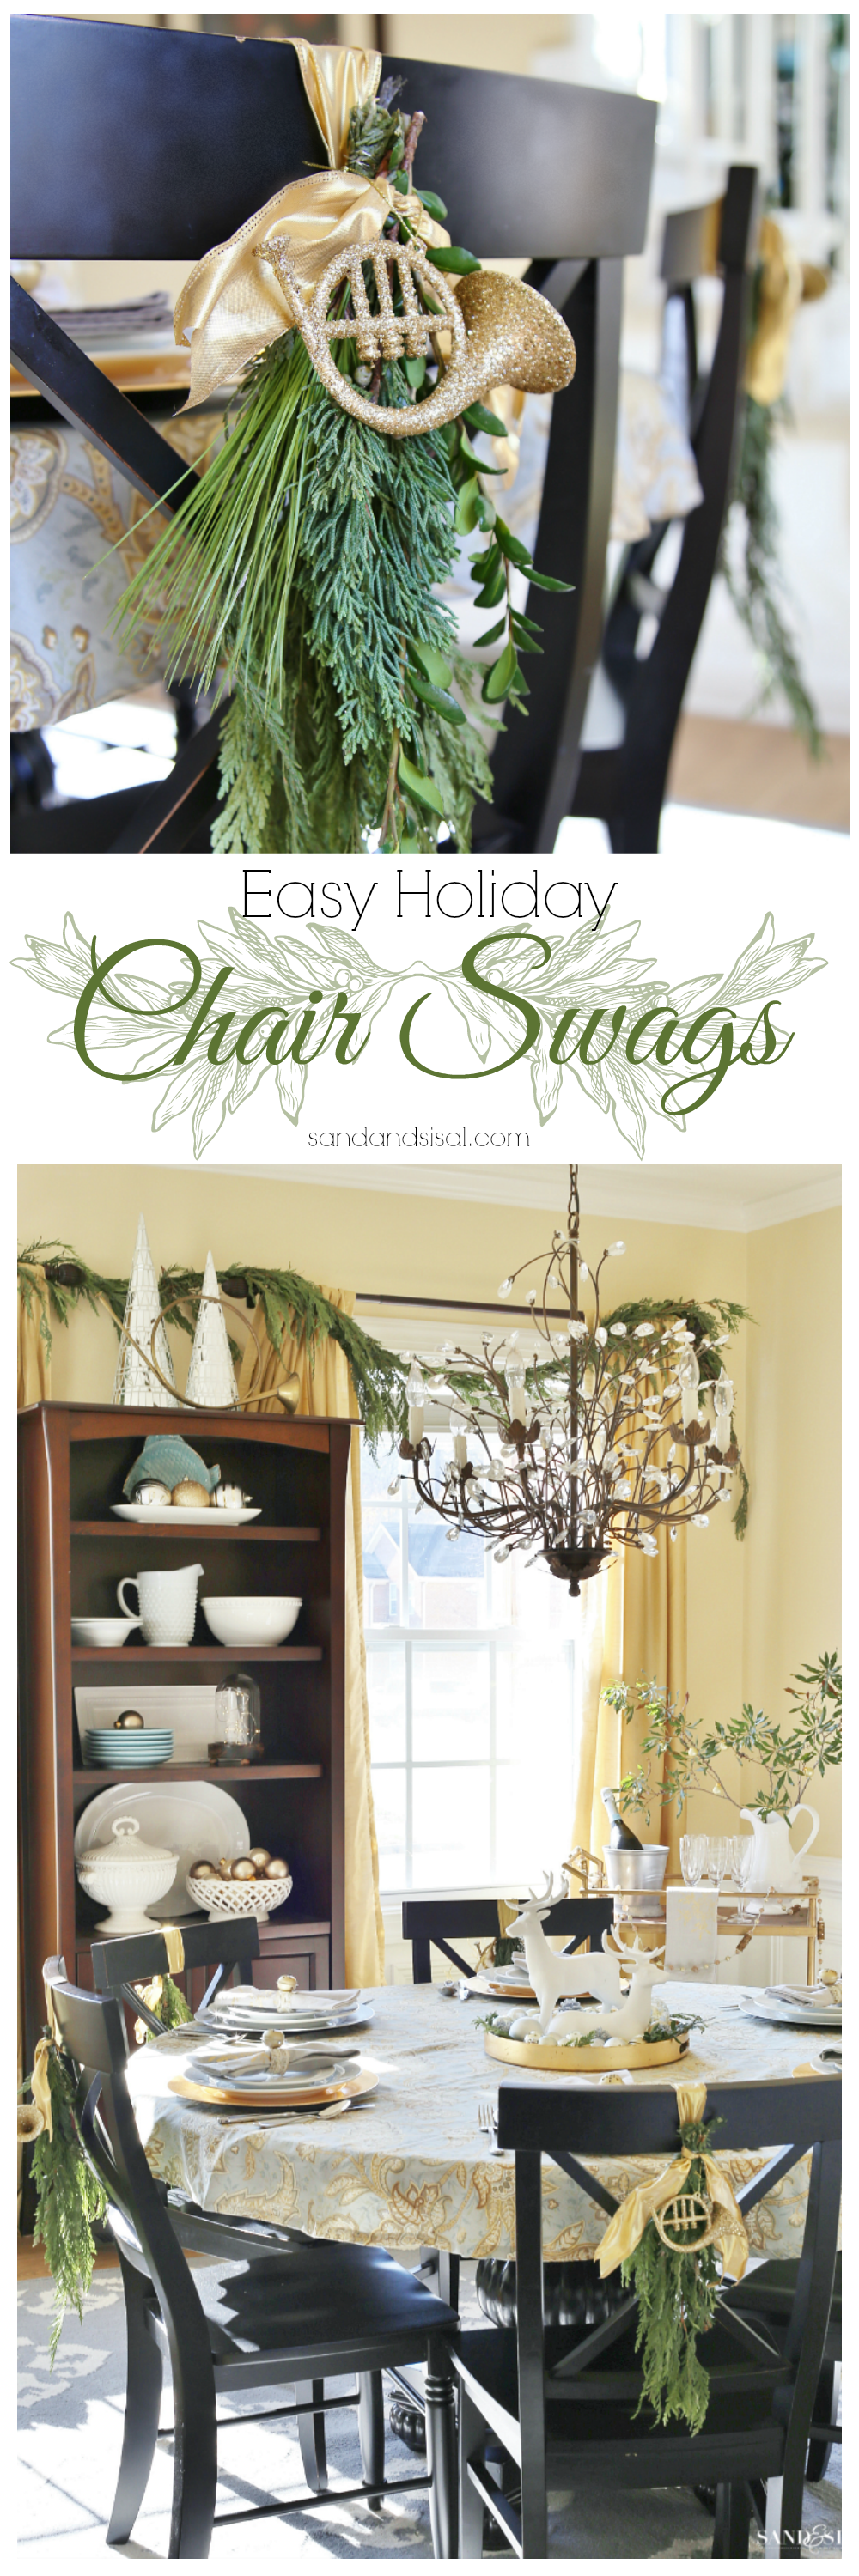 Easy Holiday Chair Swags